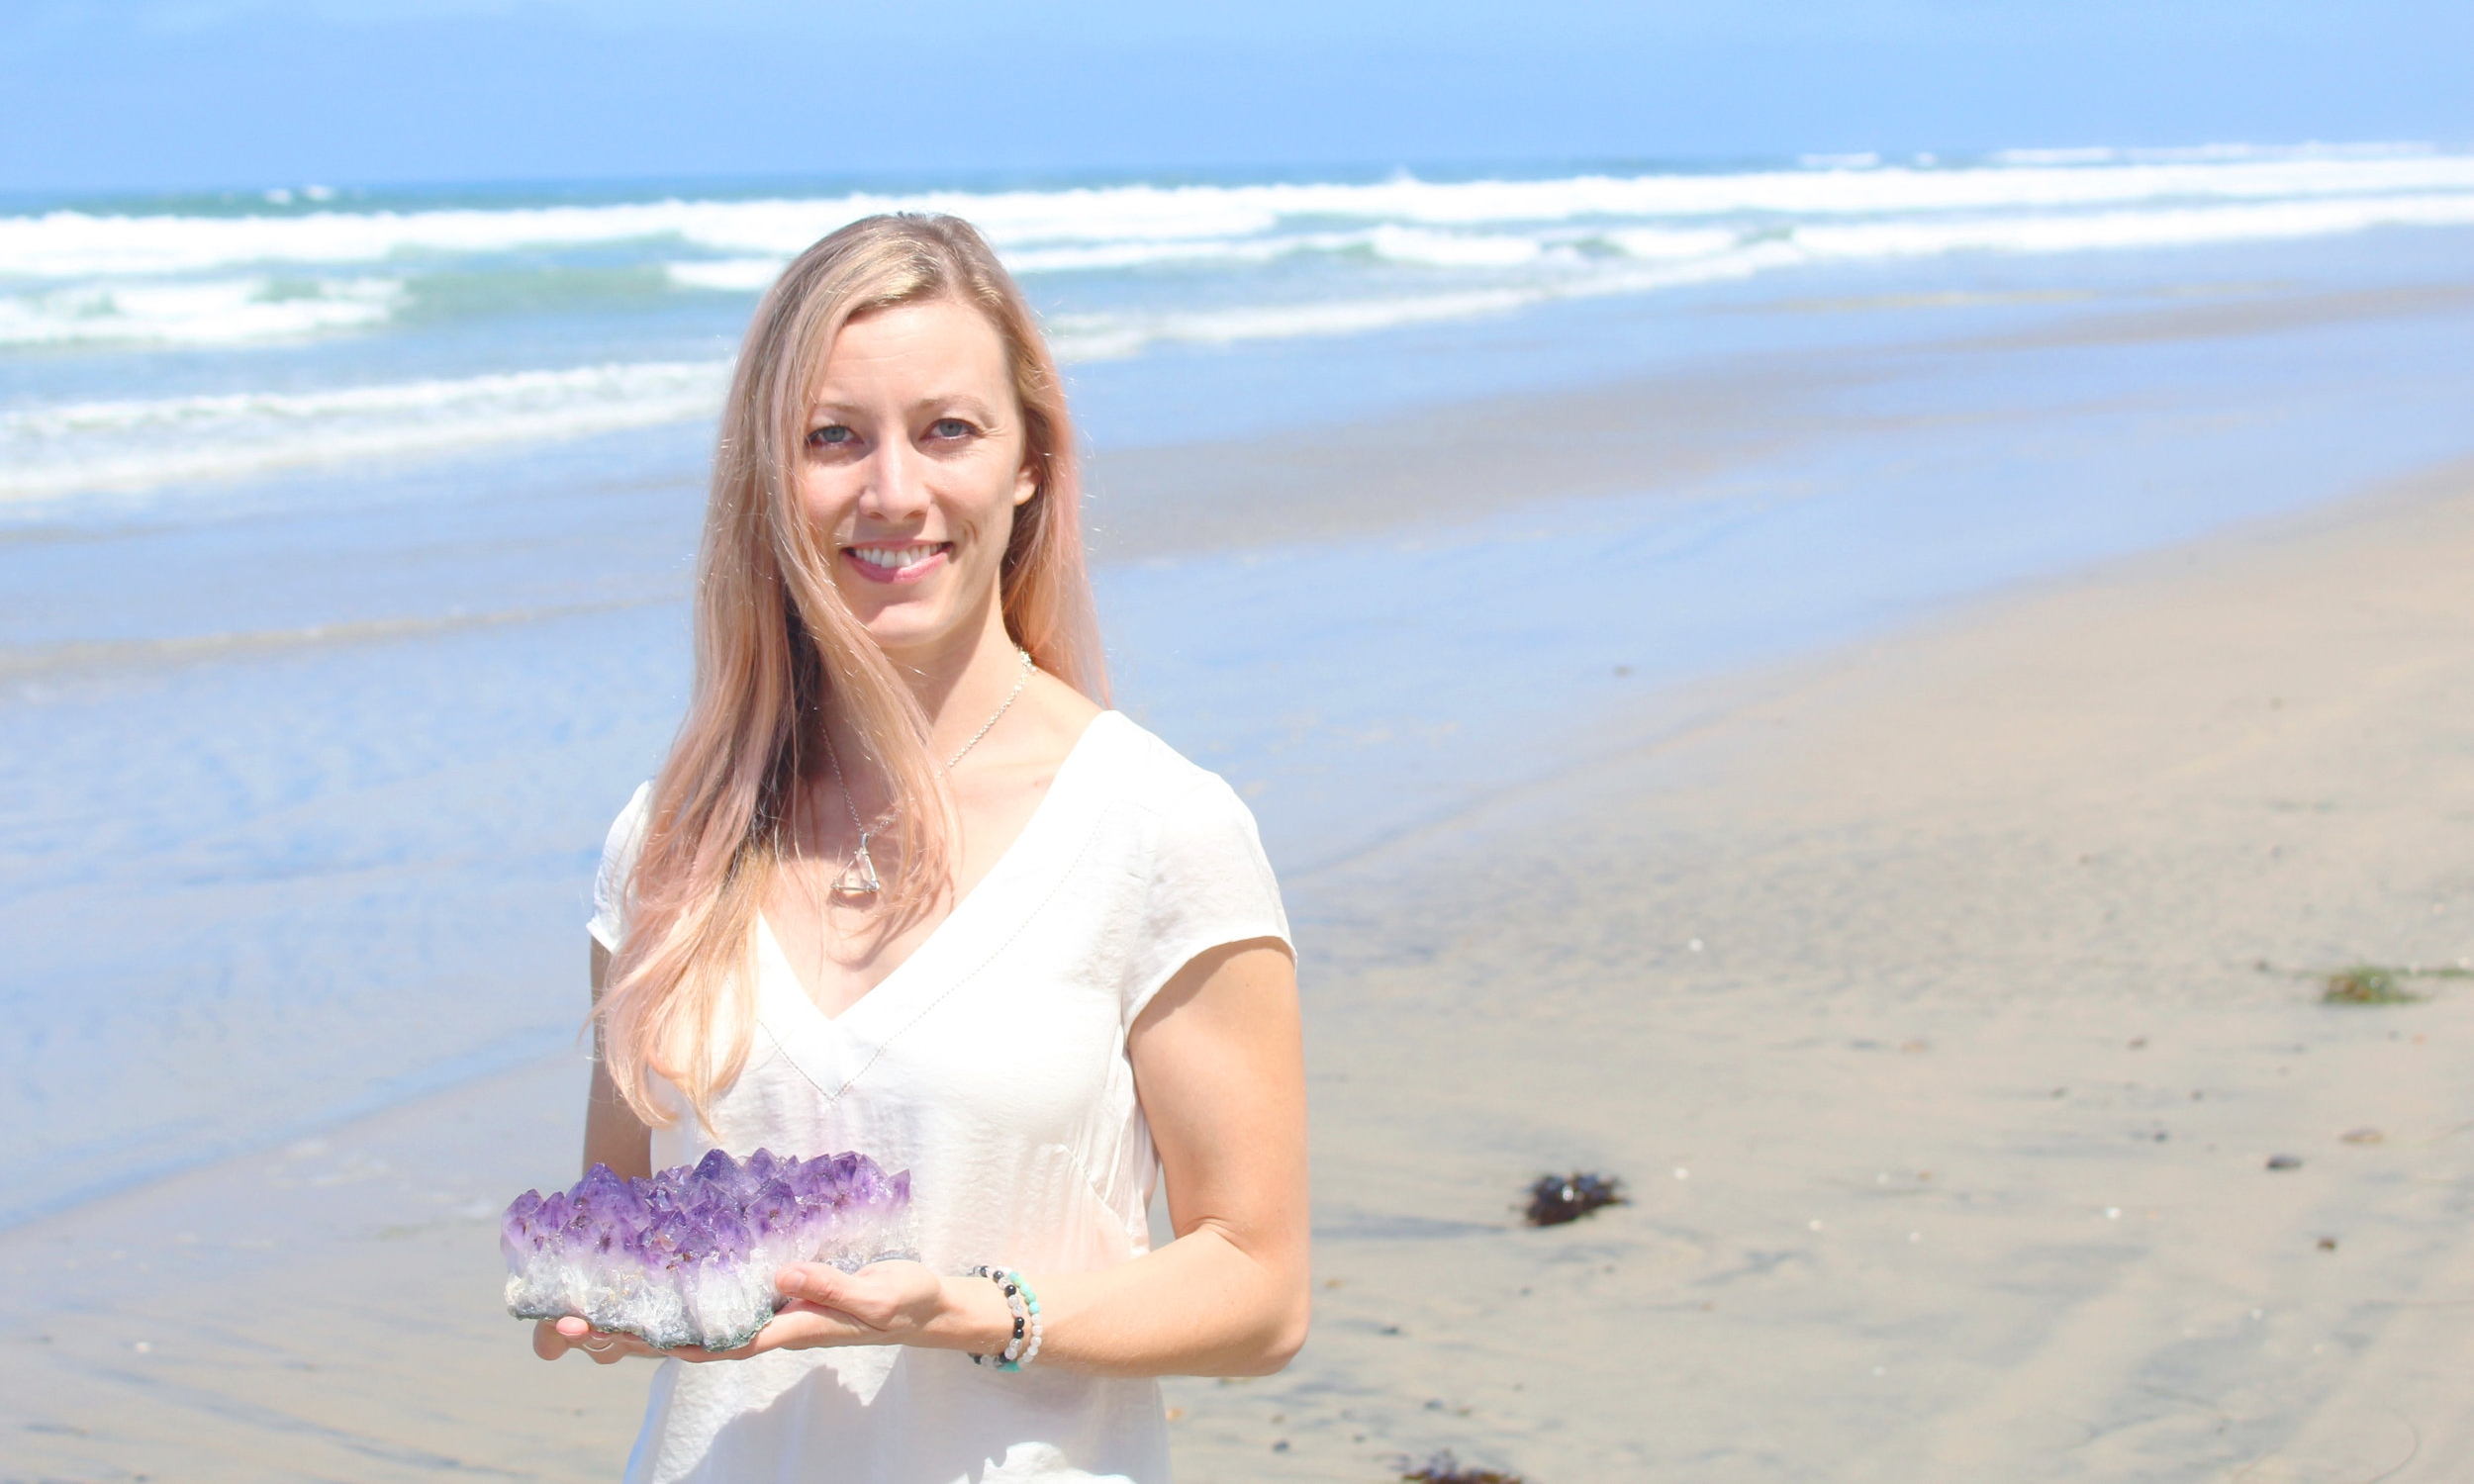 Jess Kay - 15-minute Crystal Readings ($20)Certified Crystal Healer and Certified ThetaHealer (energy work), utilizing crystals and energy for emotional and physical healing. Teaching and empowering others about crystals and energy is her